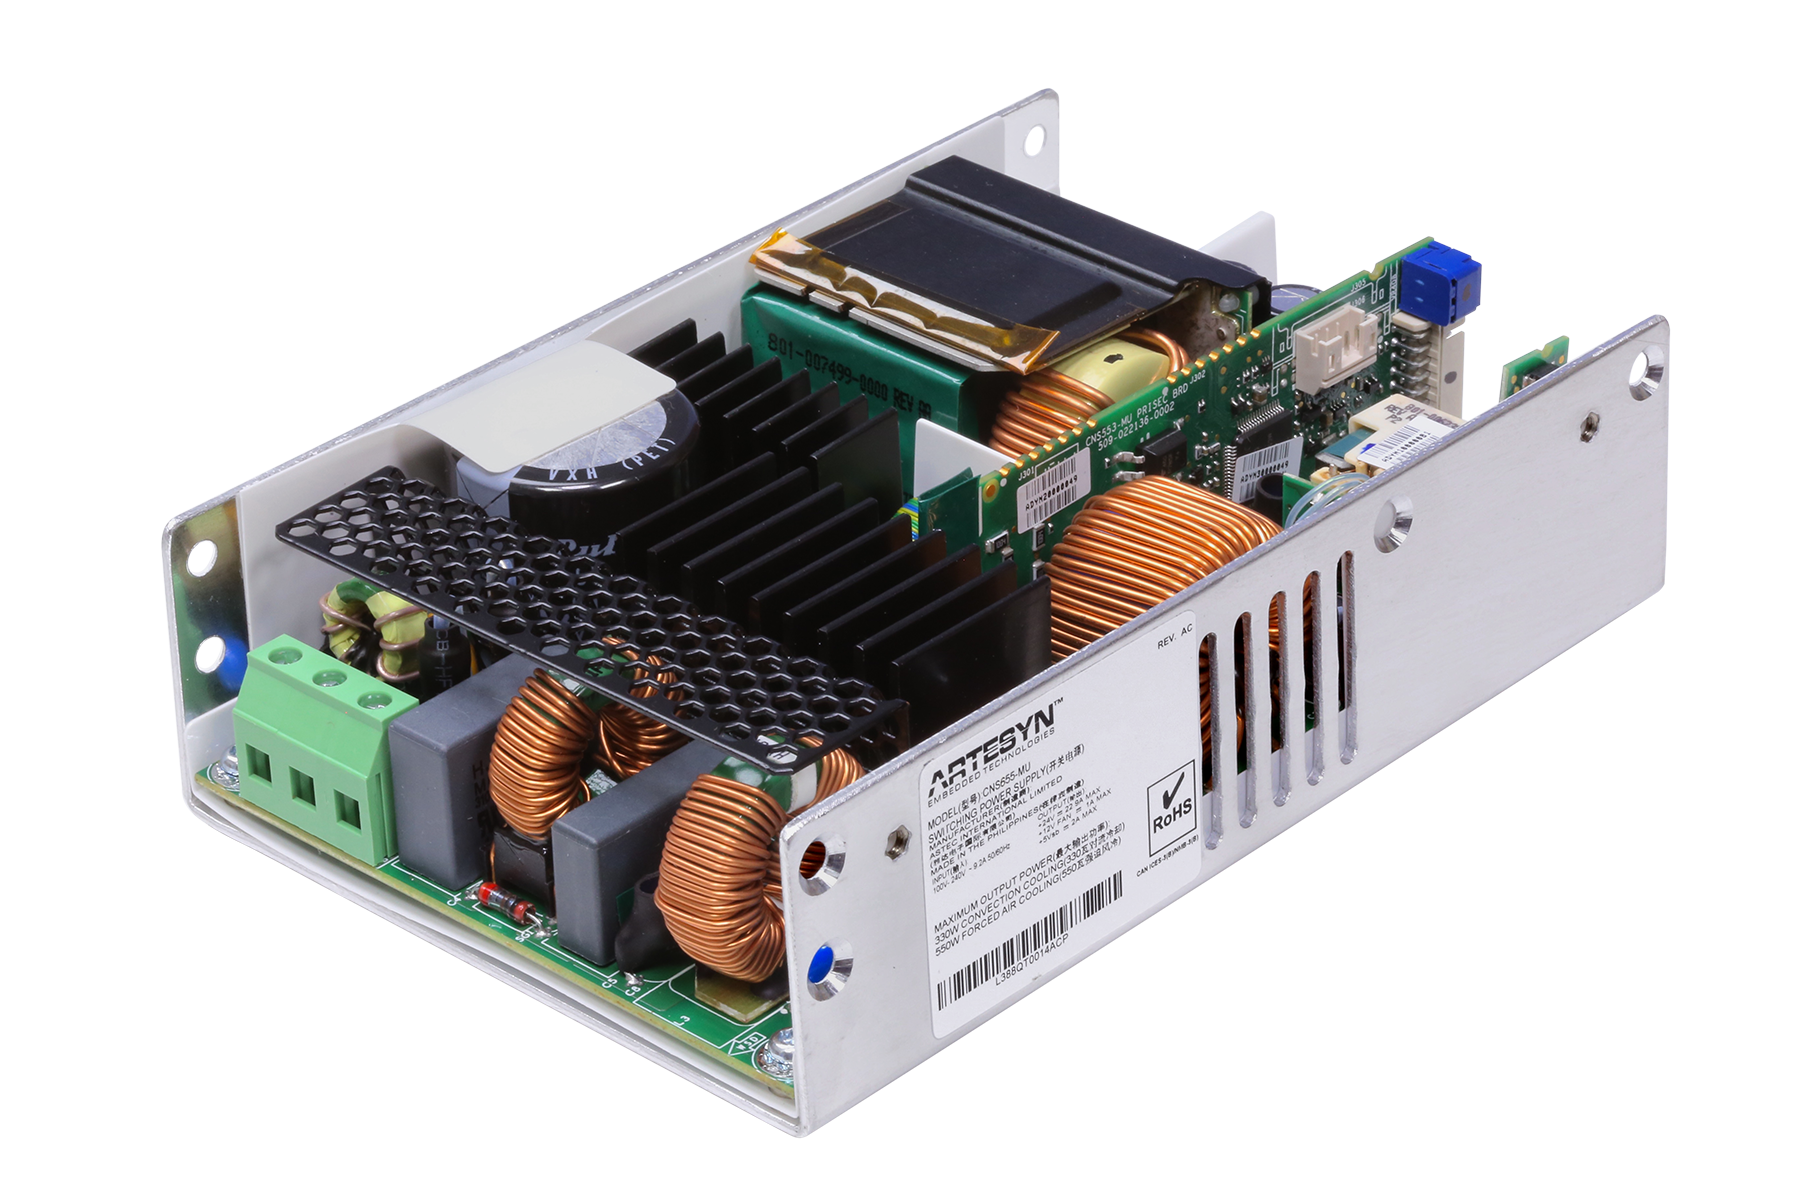 Artesyn launches family of medical 650W AC-DC Supplies